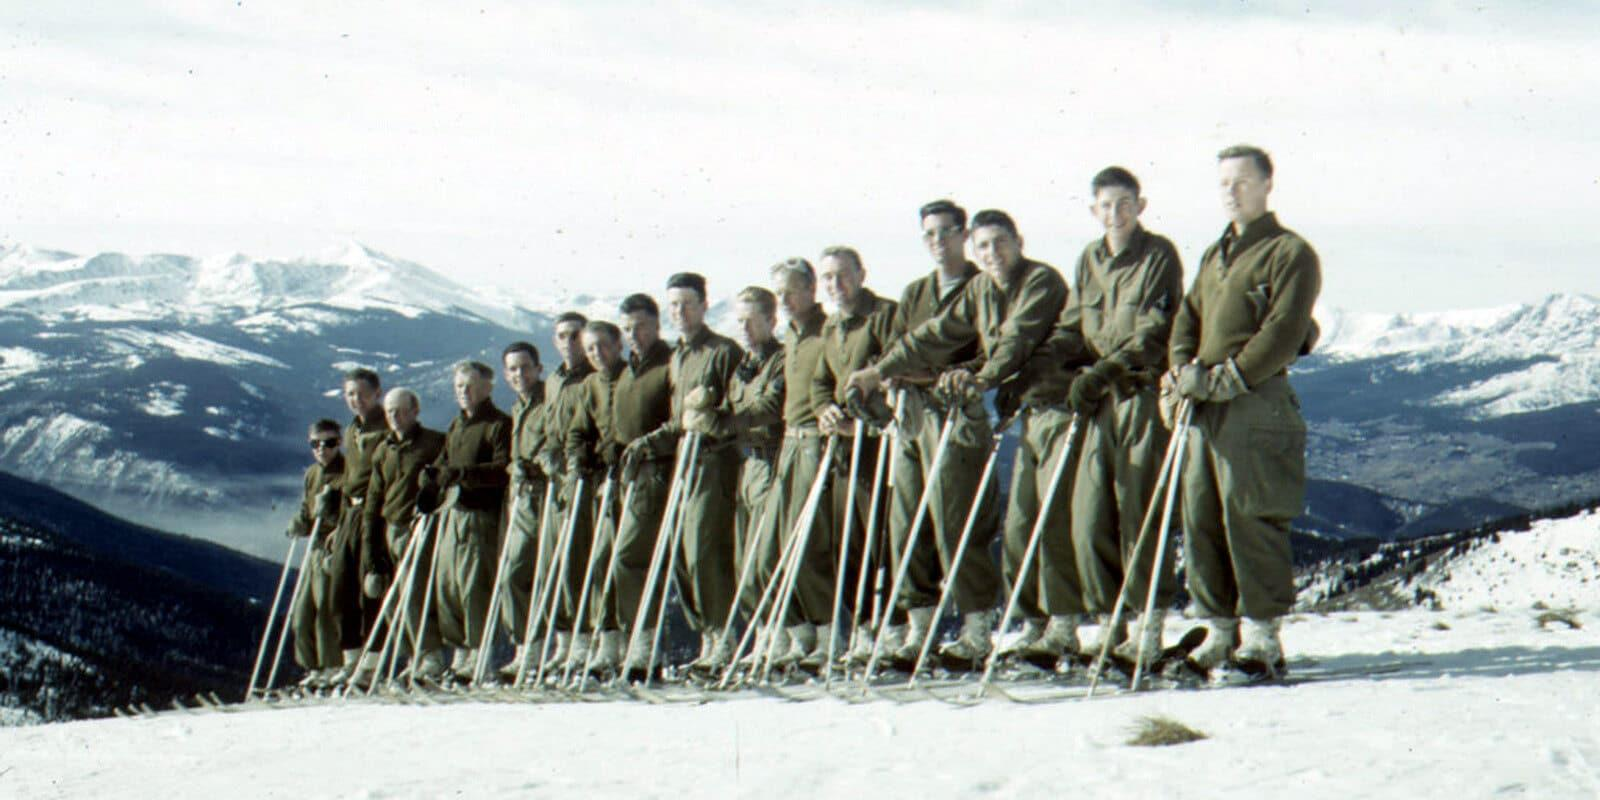 10th Mountain Division - Climb to Glory: 10th Mountain Division troops during their winter training in Colorado